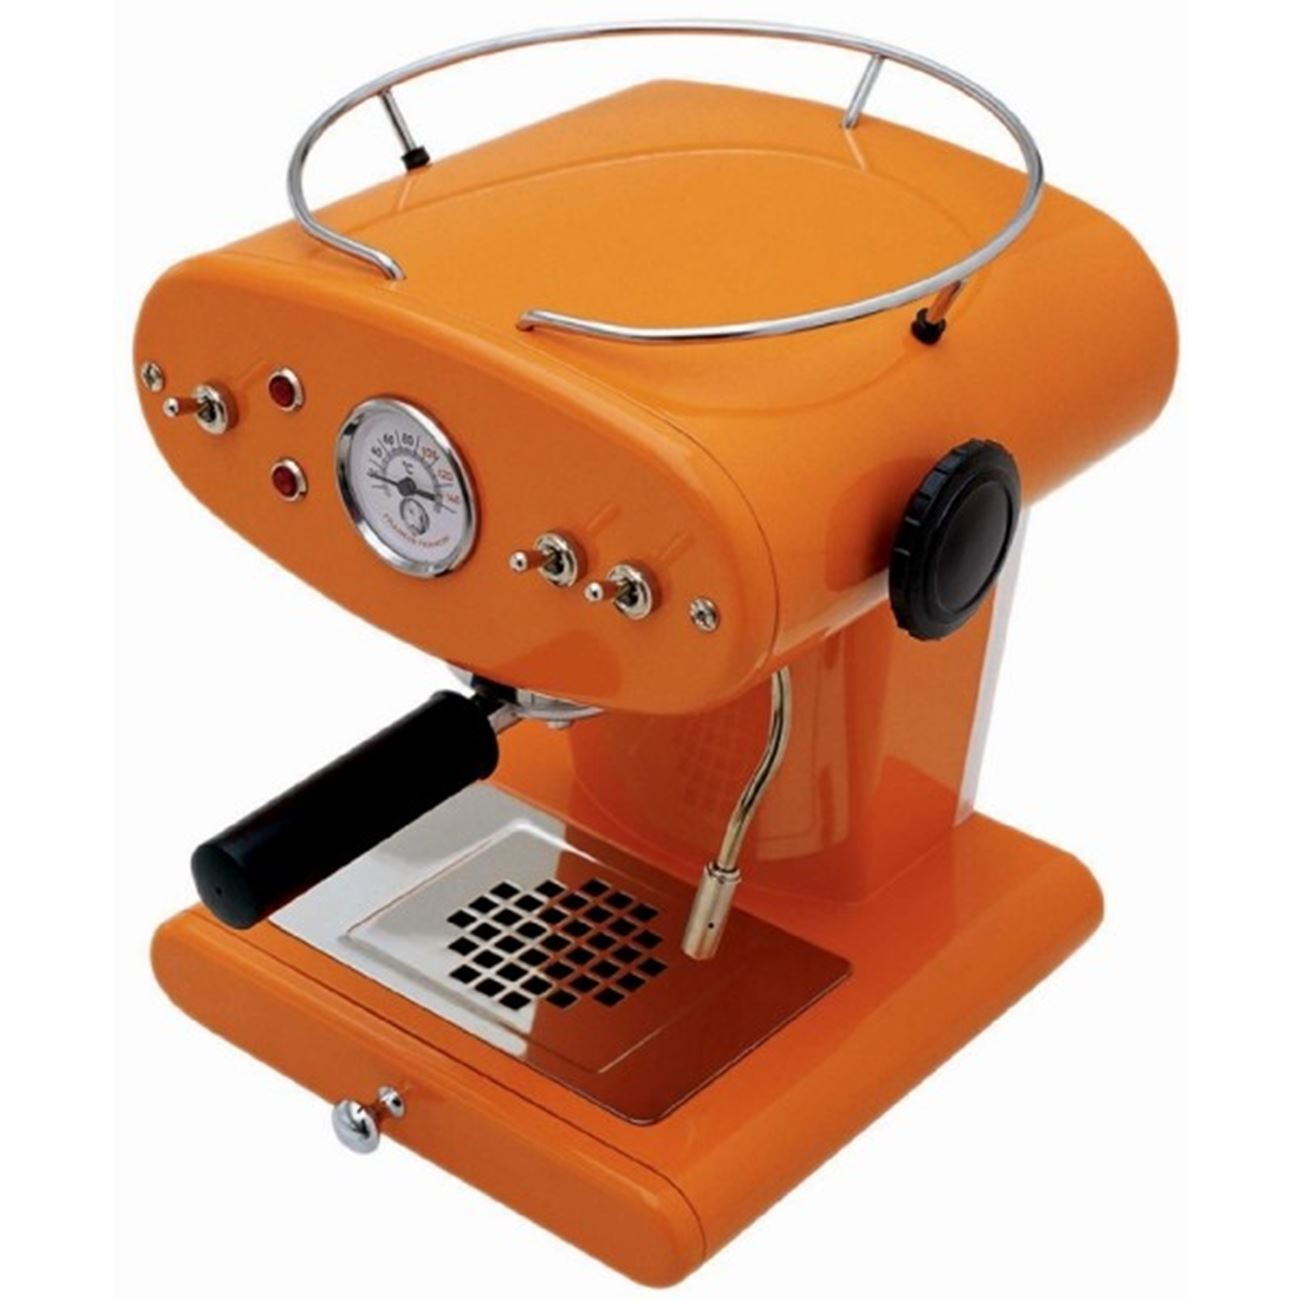 FRANCIS FRANCIS X1 TRIO PROFESSIONAL ORANGE < Illy espresso ESE ...